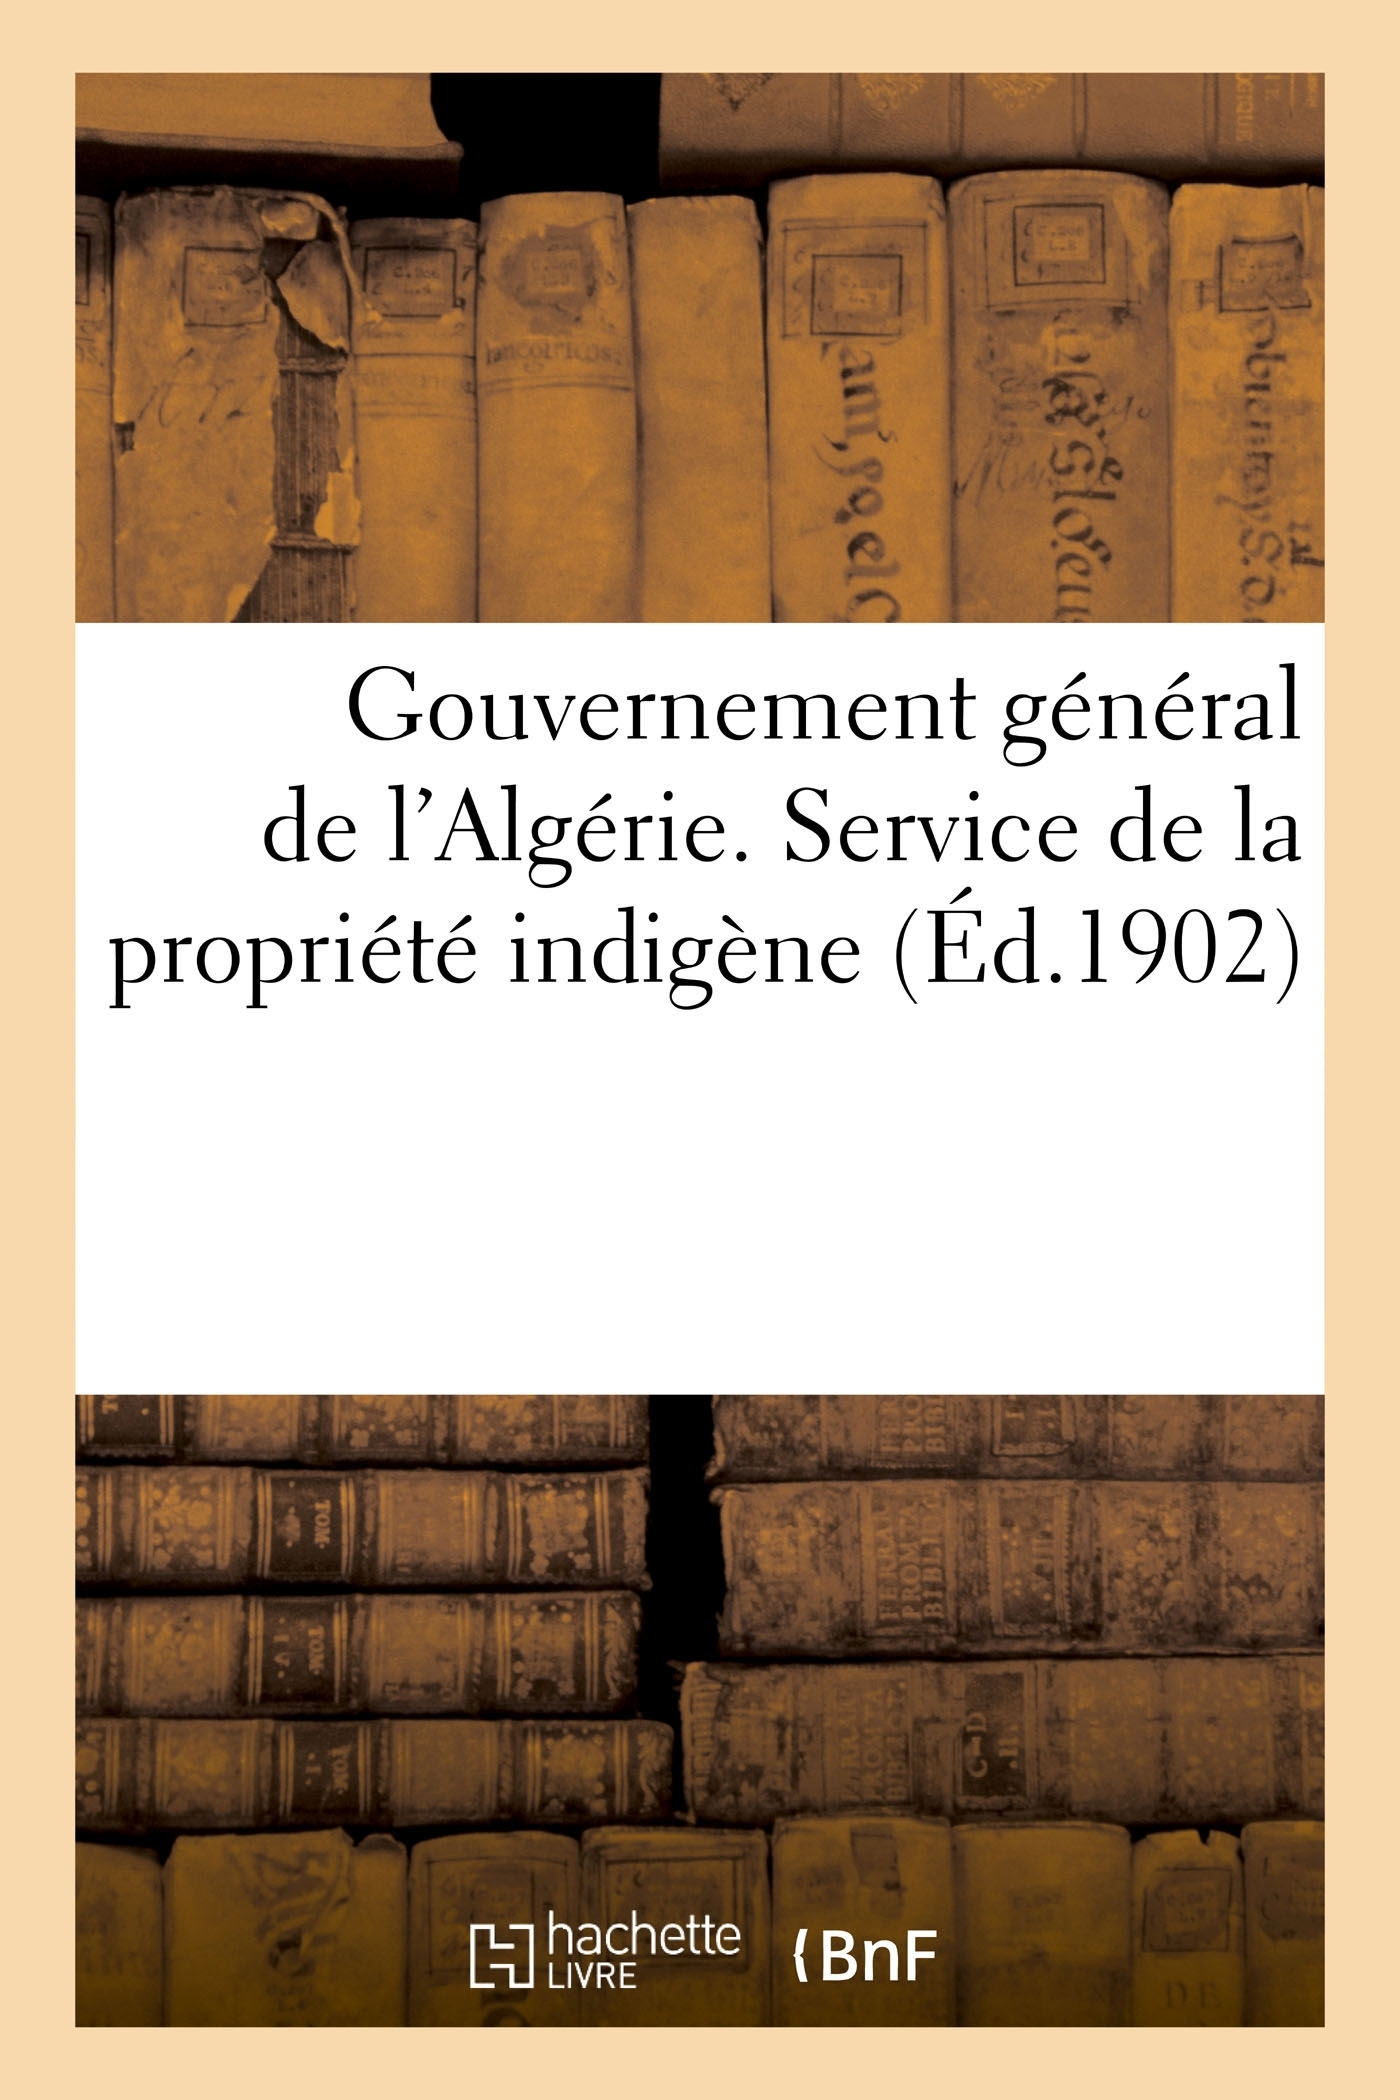 GOUVERNEMENT GENERAL DE L'ALGERIE. SERVICE DE LA PROPRIETE INDIGENE. INSTRUCTION MODIFIANT - L'INSTR